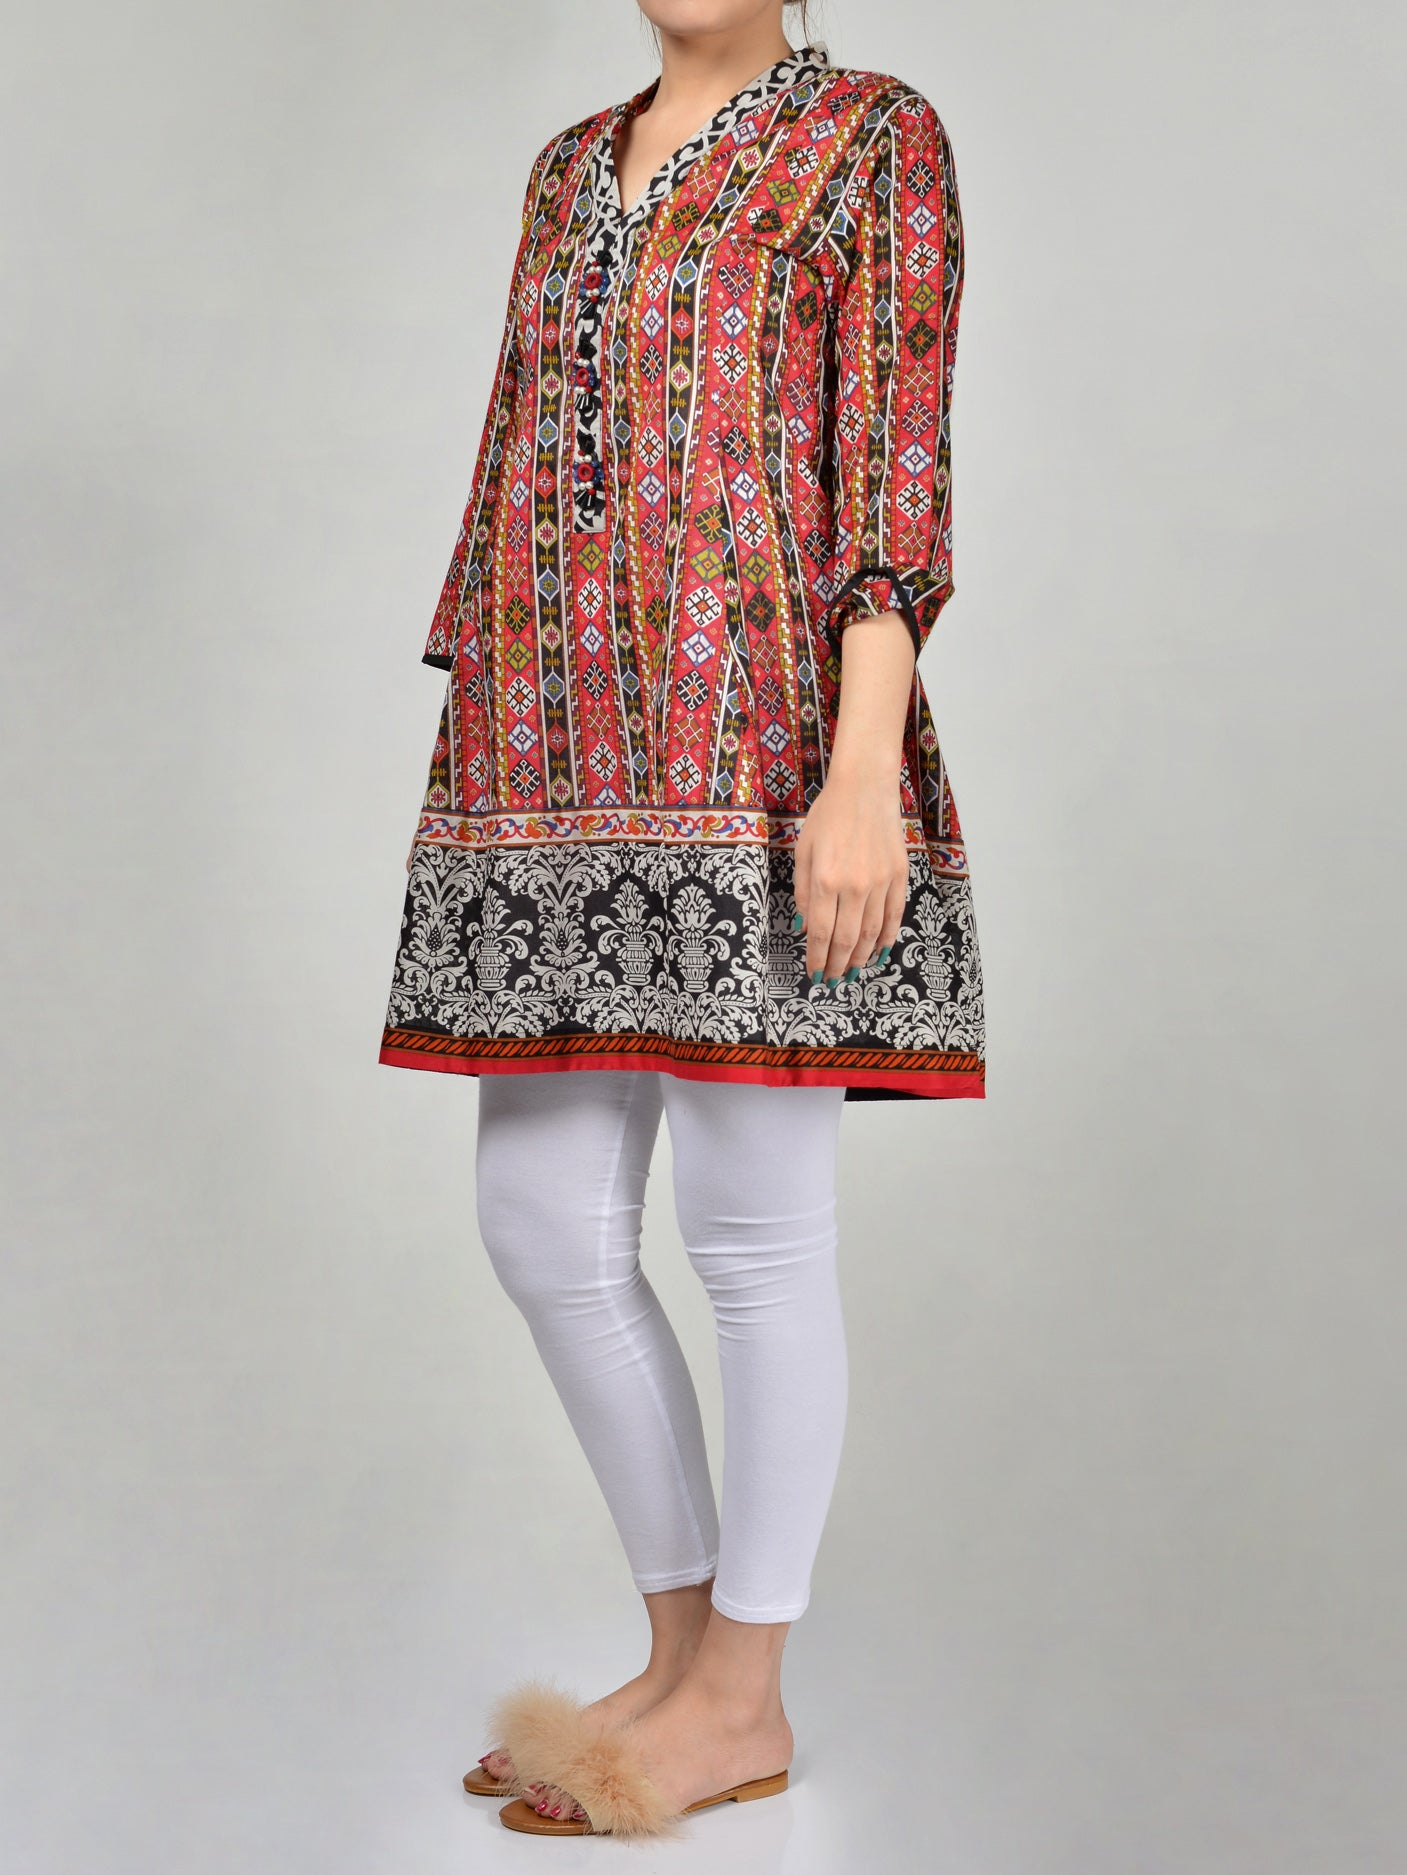 Limelight Printed Lawn Frock P0160 Online in Pakistan | Limelight.pk